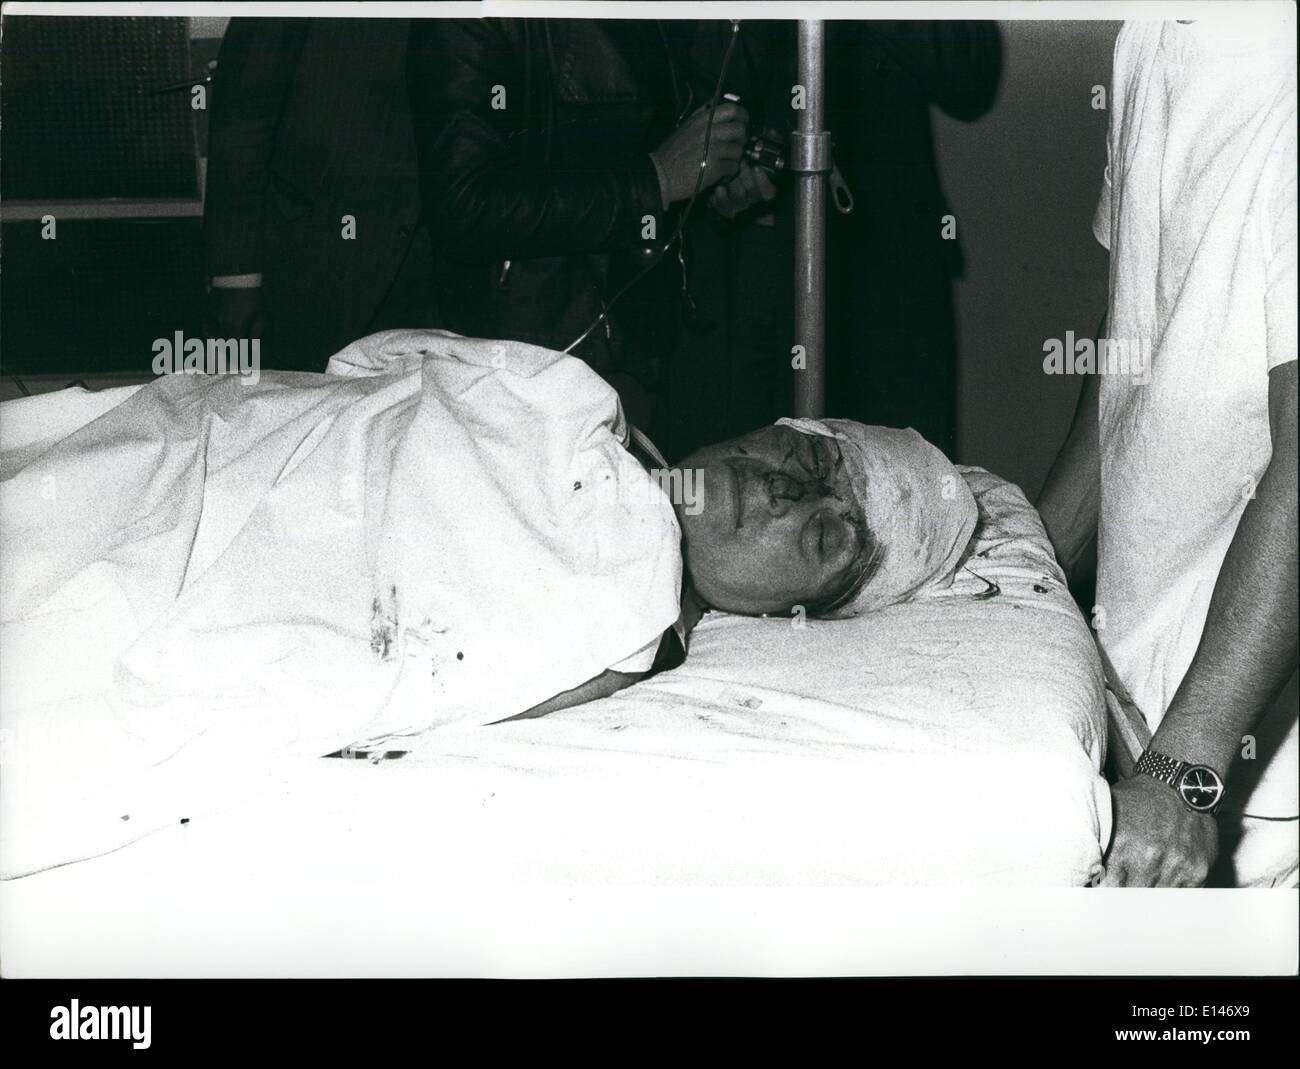 Apr. 16, 2012 - One woman killed and about thirty persons seriously injured in bomb blast. Milan 17 May 1973: At the occasion of the unveiling germany of the bust of police commissioner Luigi Calabresi who was murdered a year ago, a criminal threw a bomb into the crowd. Photo shows One of the many seriously wounded persons immediately upon arrival at the milan first - Aid Station. - Stock Image